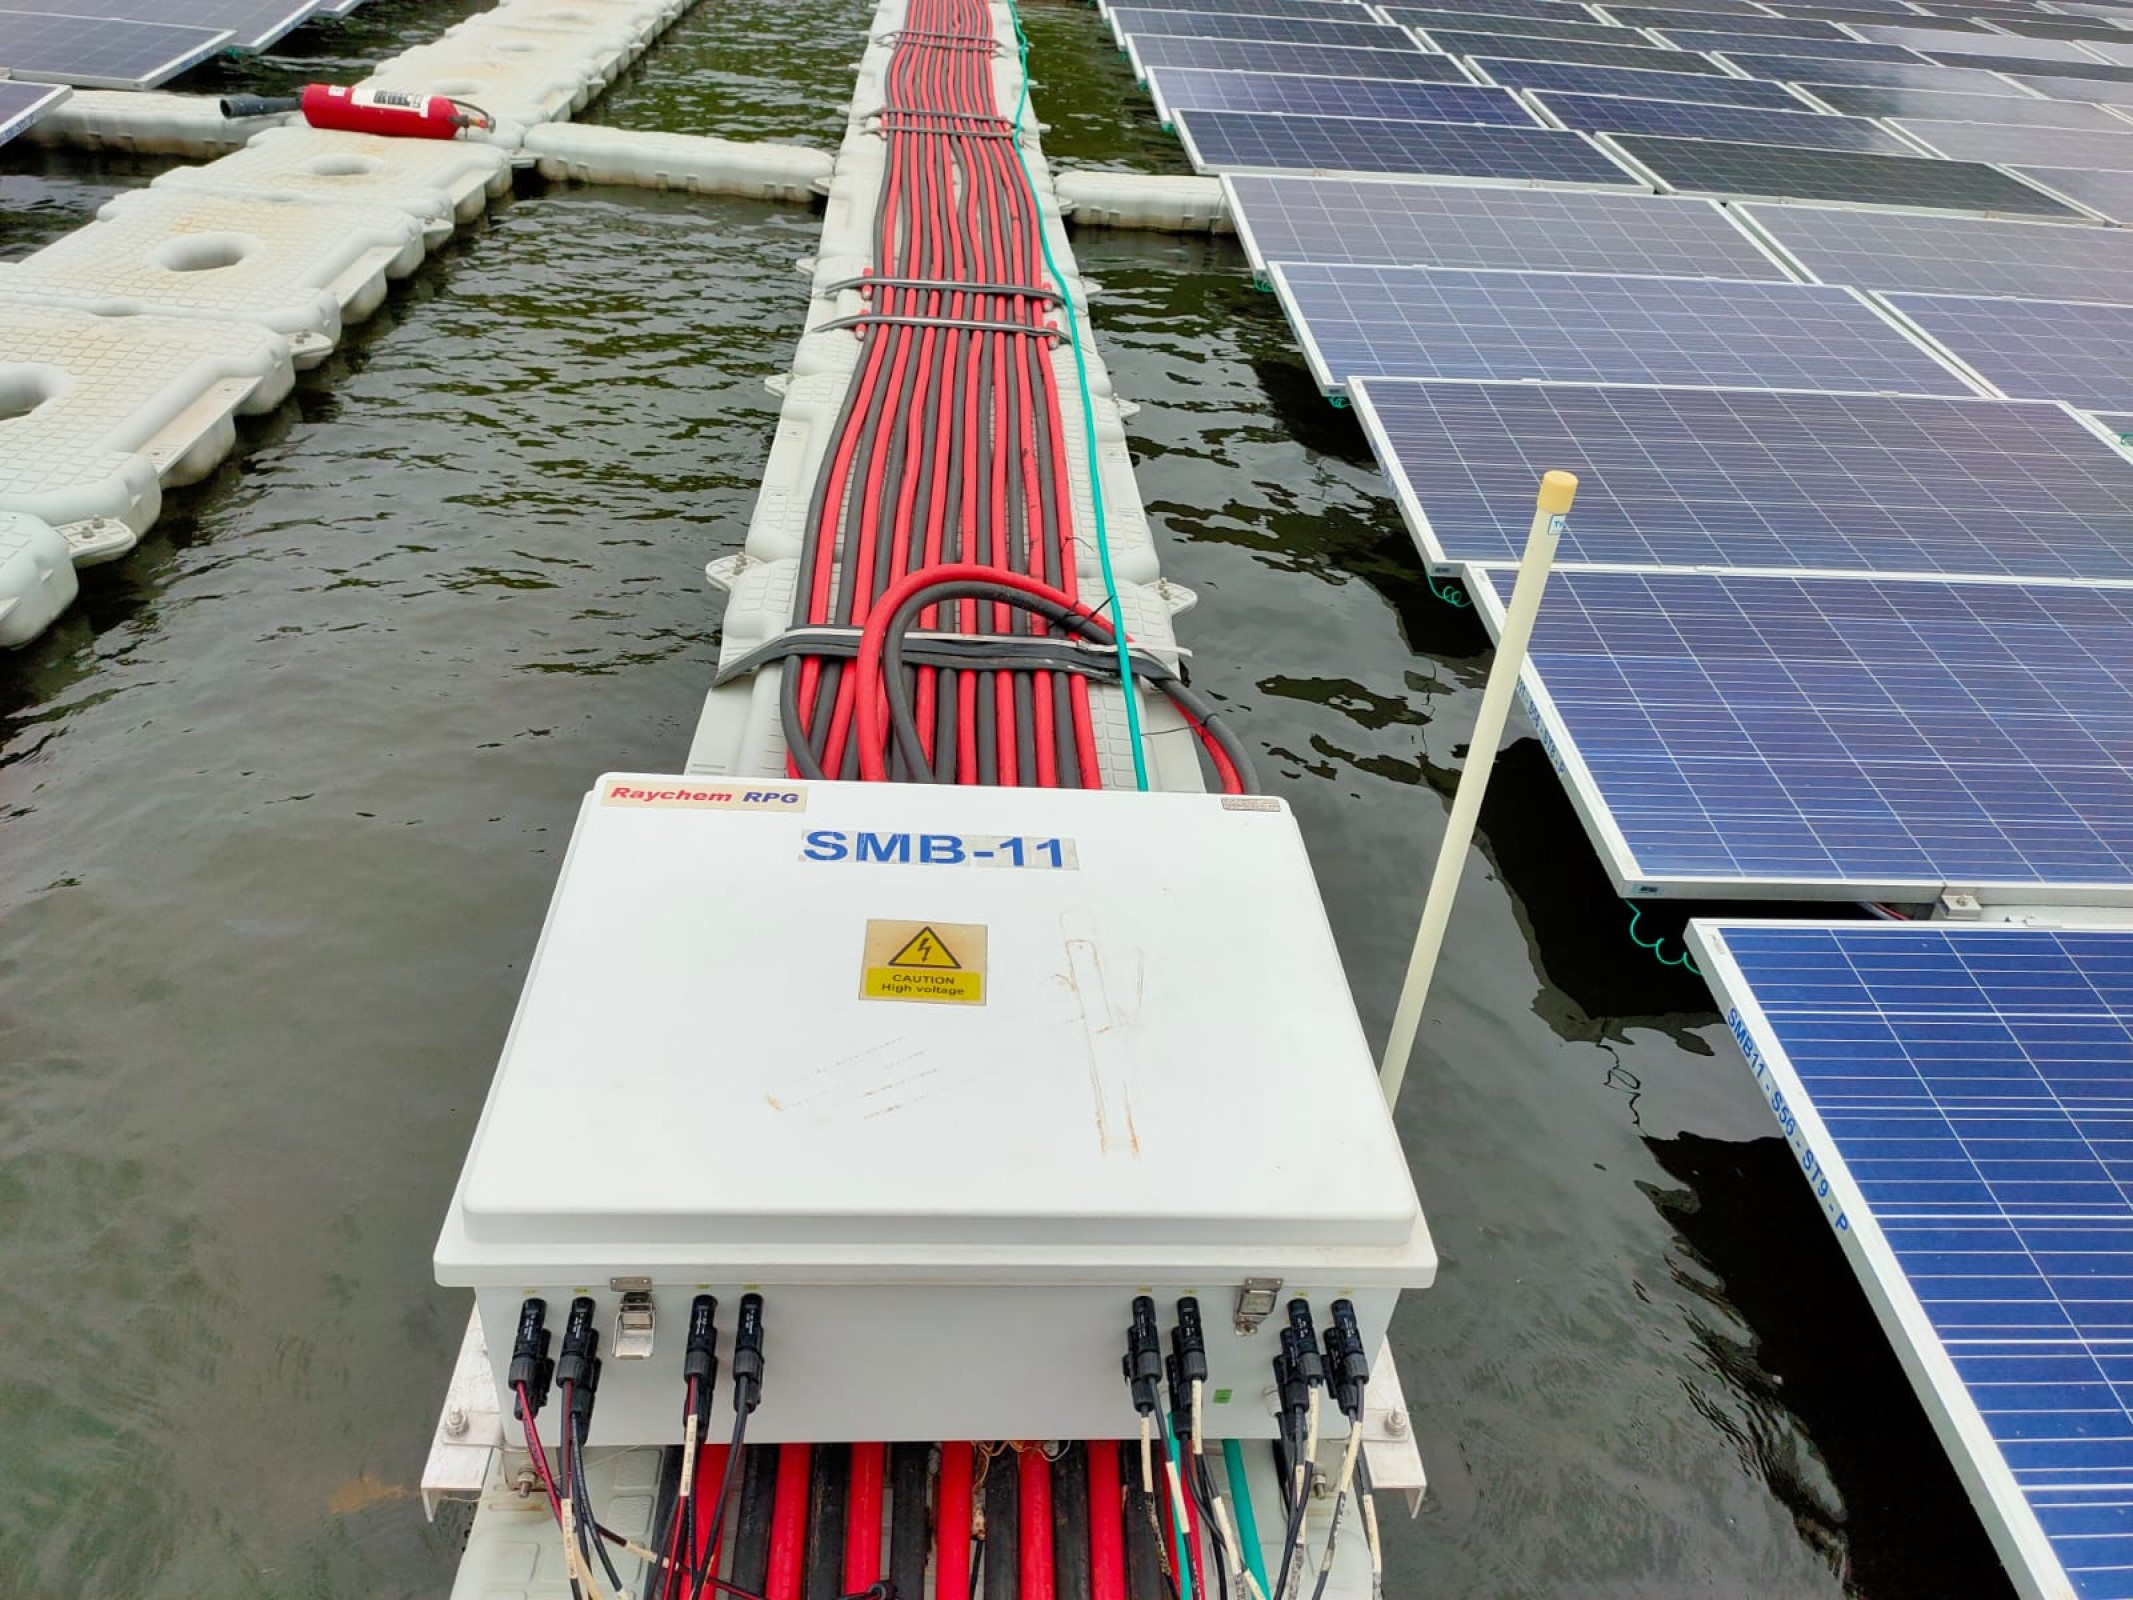 https://www.advanticsys.com/wp-content/uploads/2020/10/4mwp-floating-solar-pv-project-in-andhra-pradesh_photo2-1.jpeg